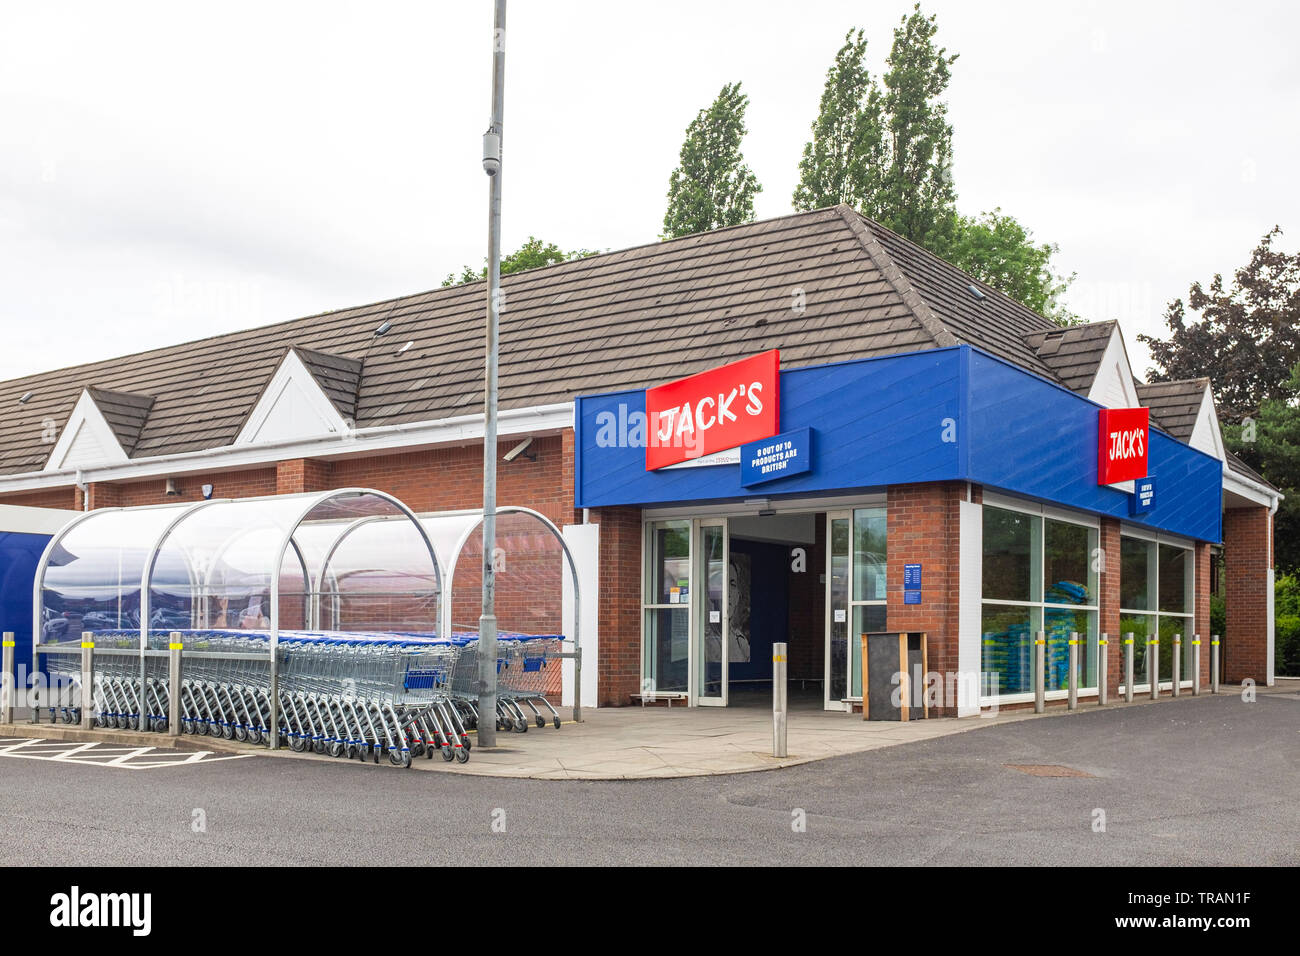 Jack's budget supermarket, part of Tesco, in Middlewich Cheshire UK - Stock Image